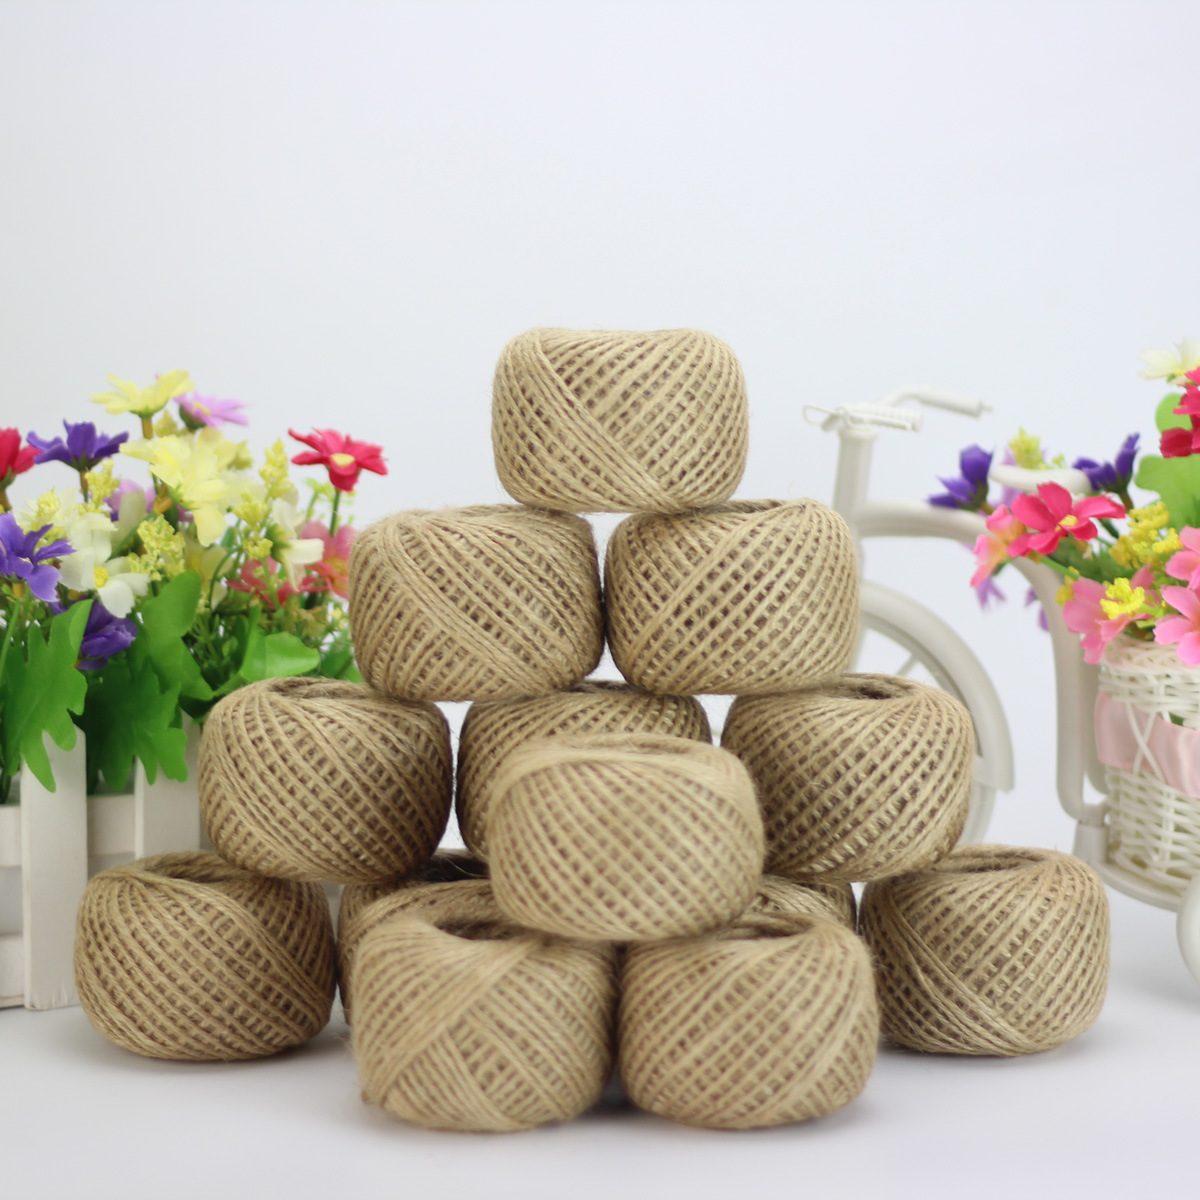 round cute small decorative bulk willow baskets with rope.htm top 10 largest colored sisal rope list and get free shipping  top 10 largest colored sisal rope list